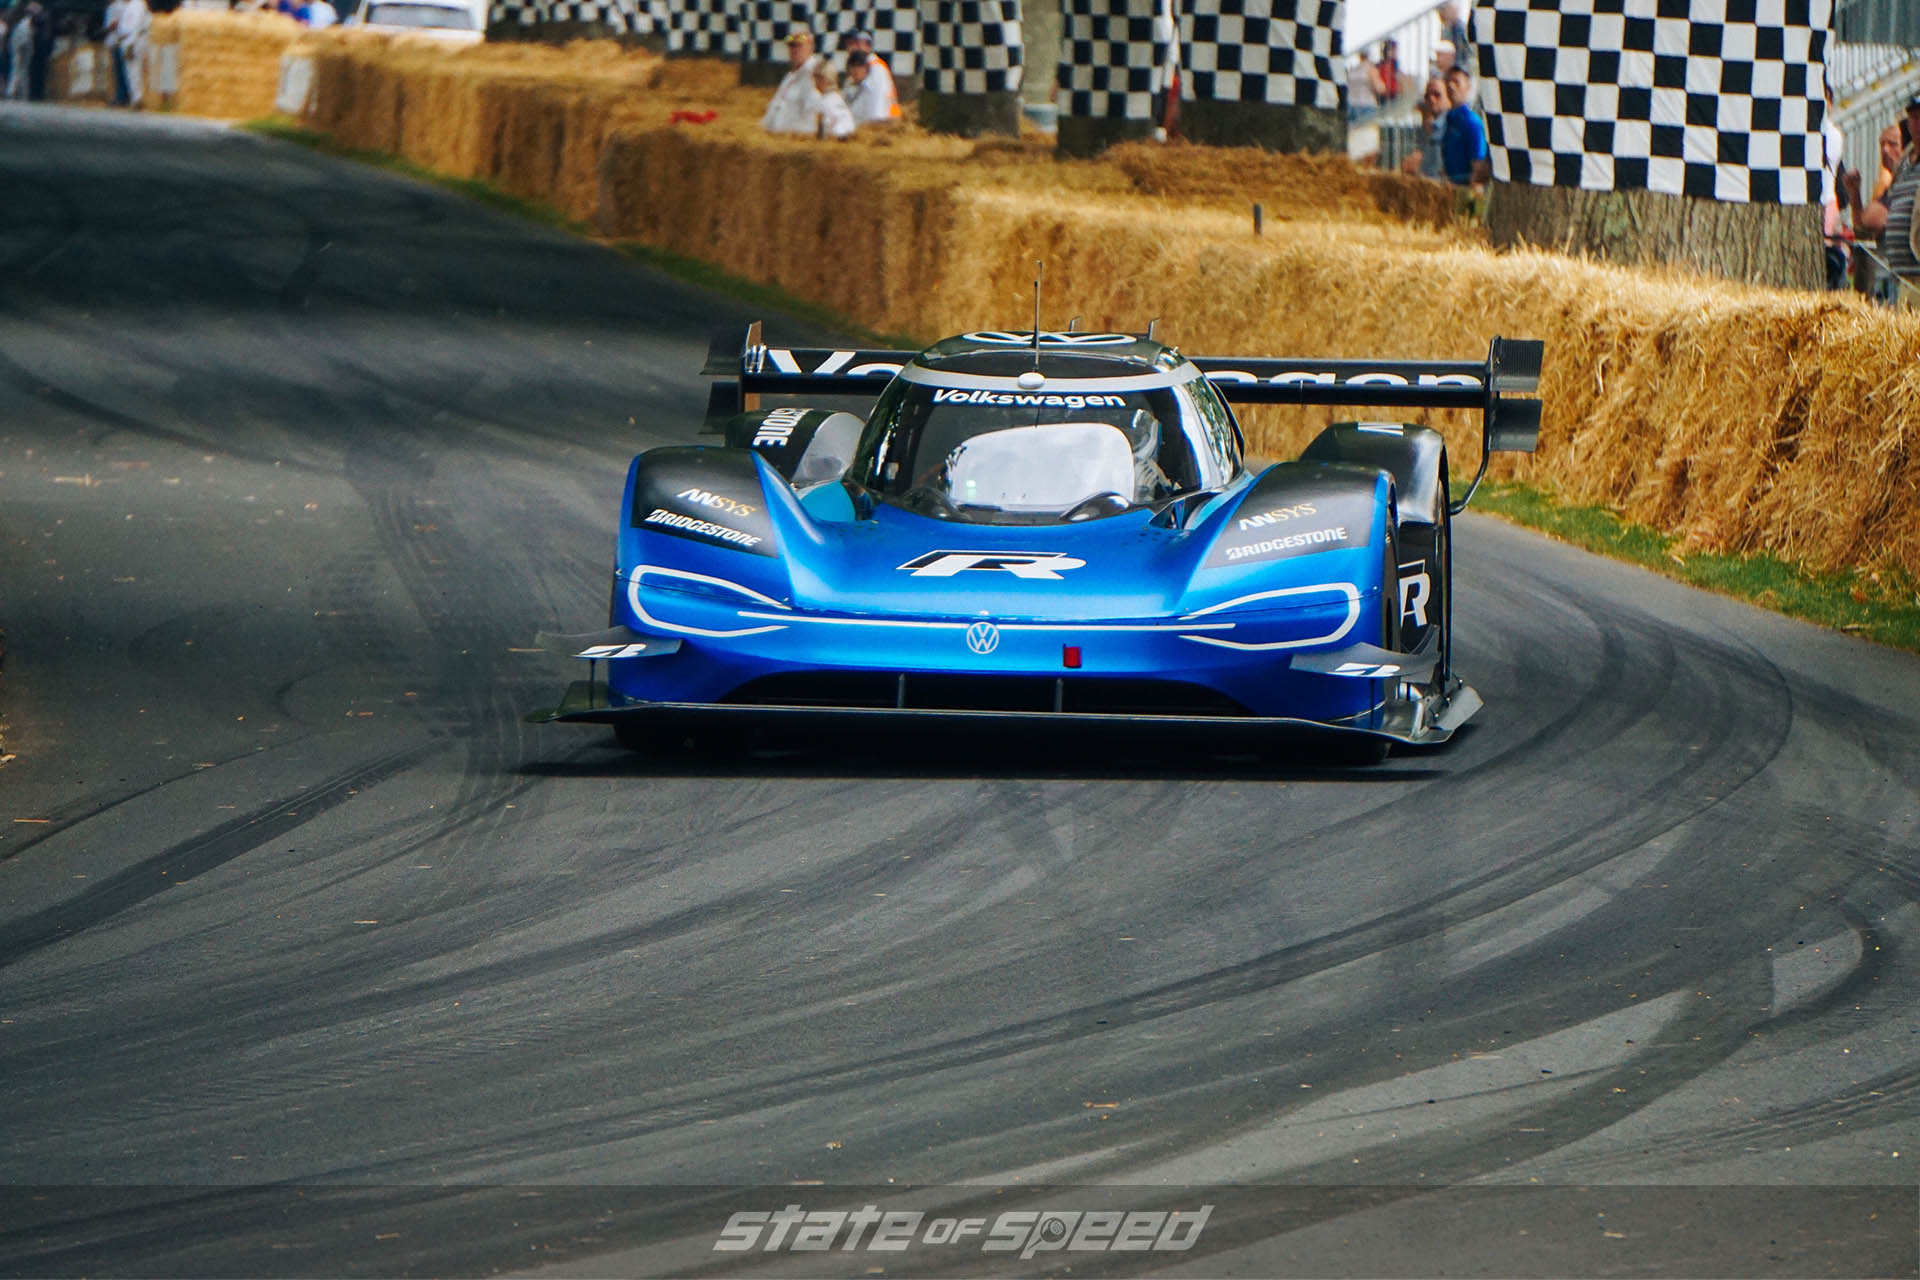 VW I.D. R at racing at goodwood festival of speed